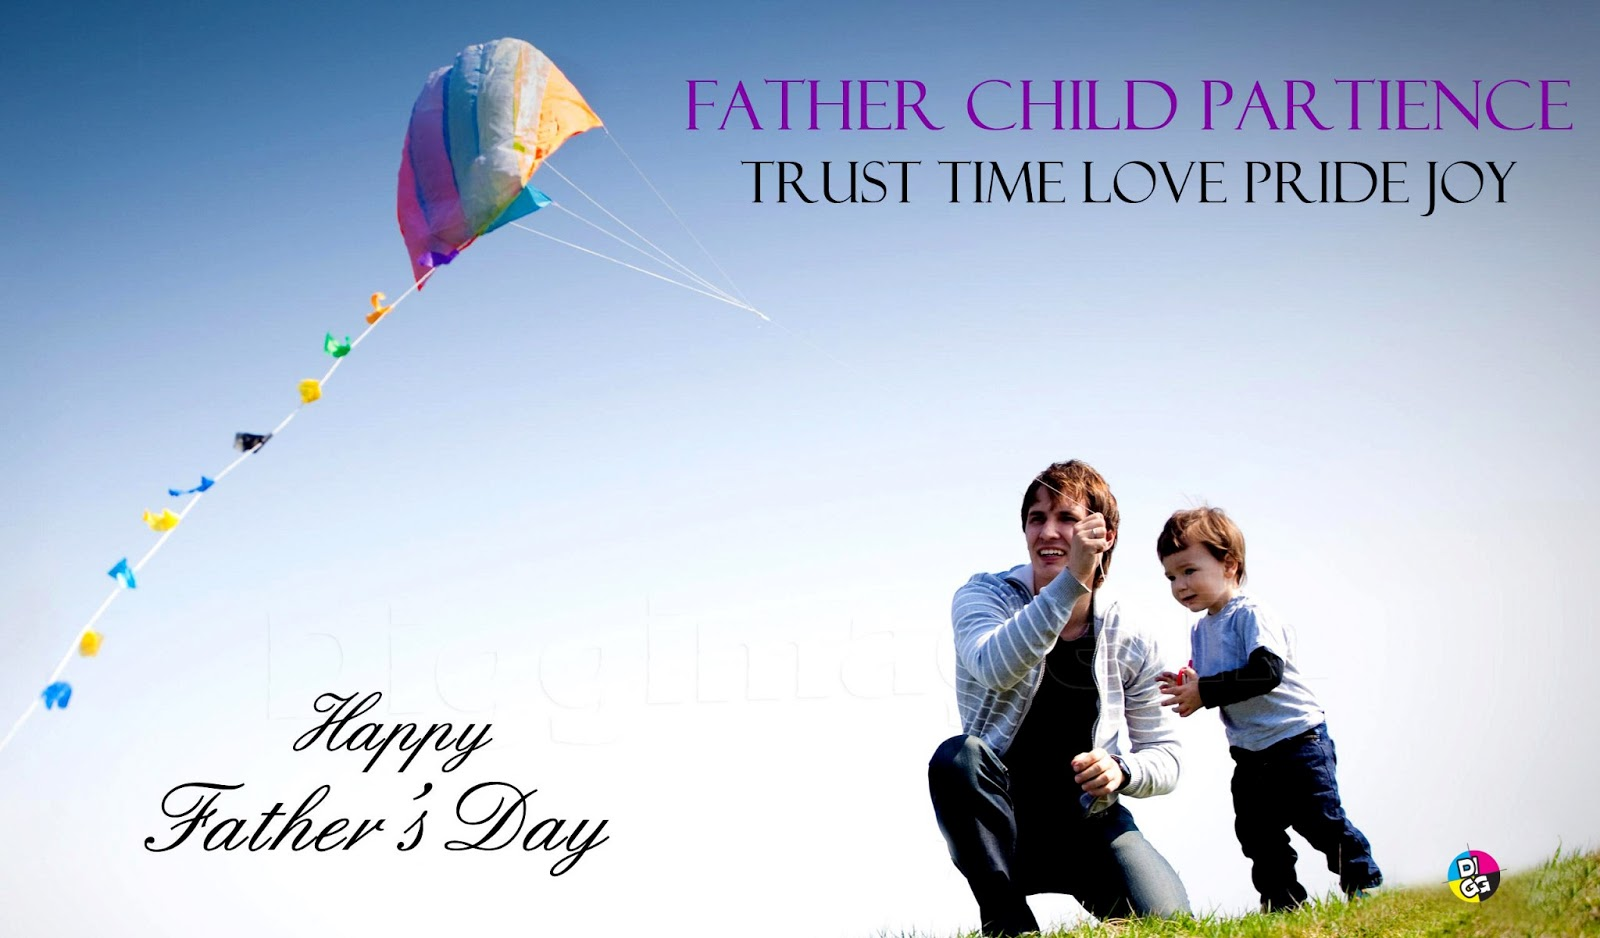 Top 10 best fathers day 2017 sms wishes message from son to fathers day message from son m4hsunfo Image collections